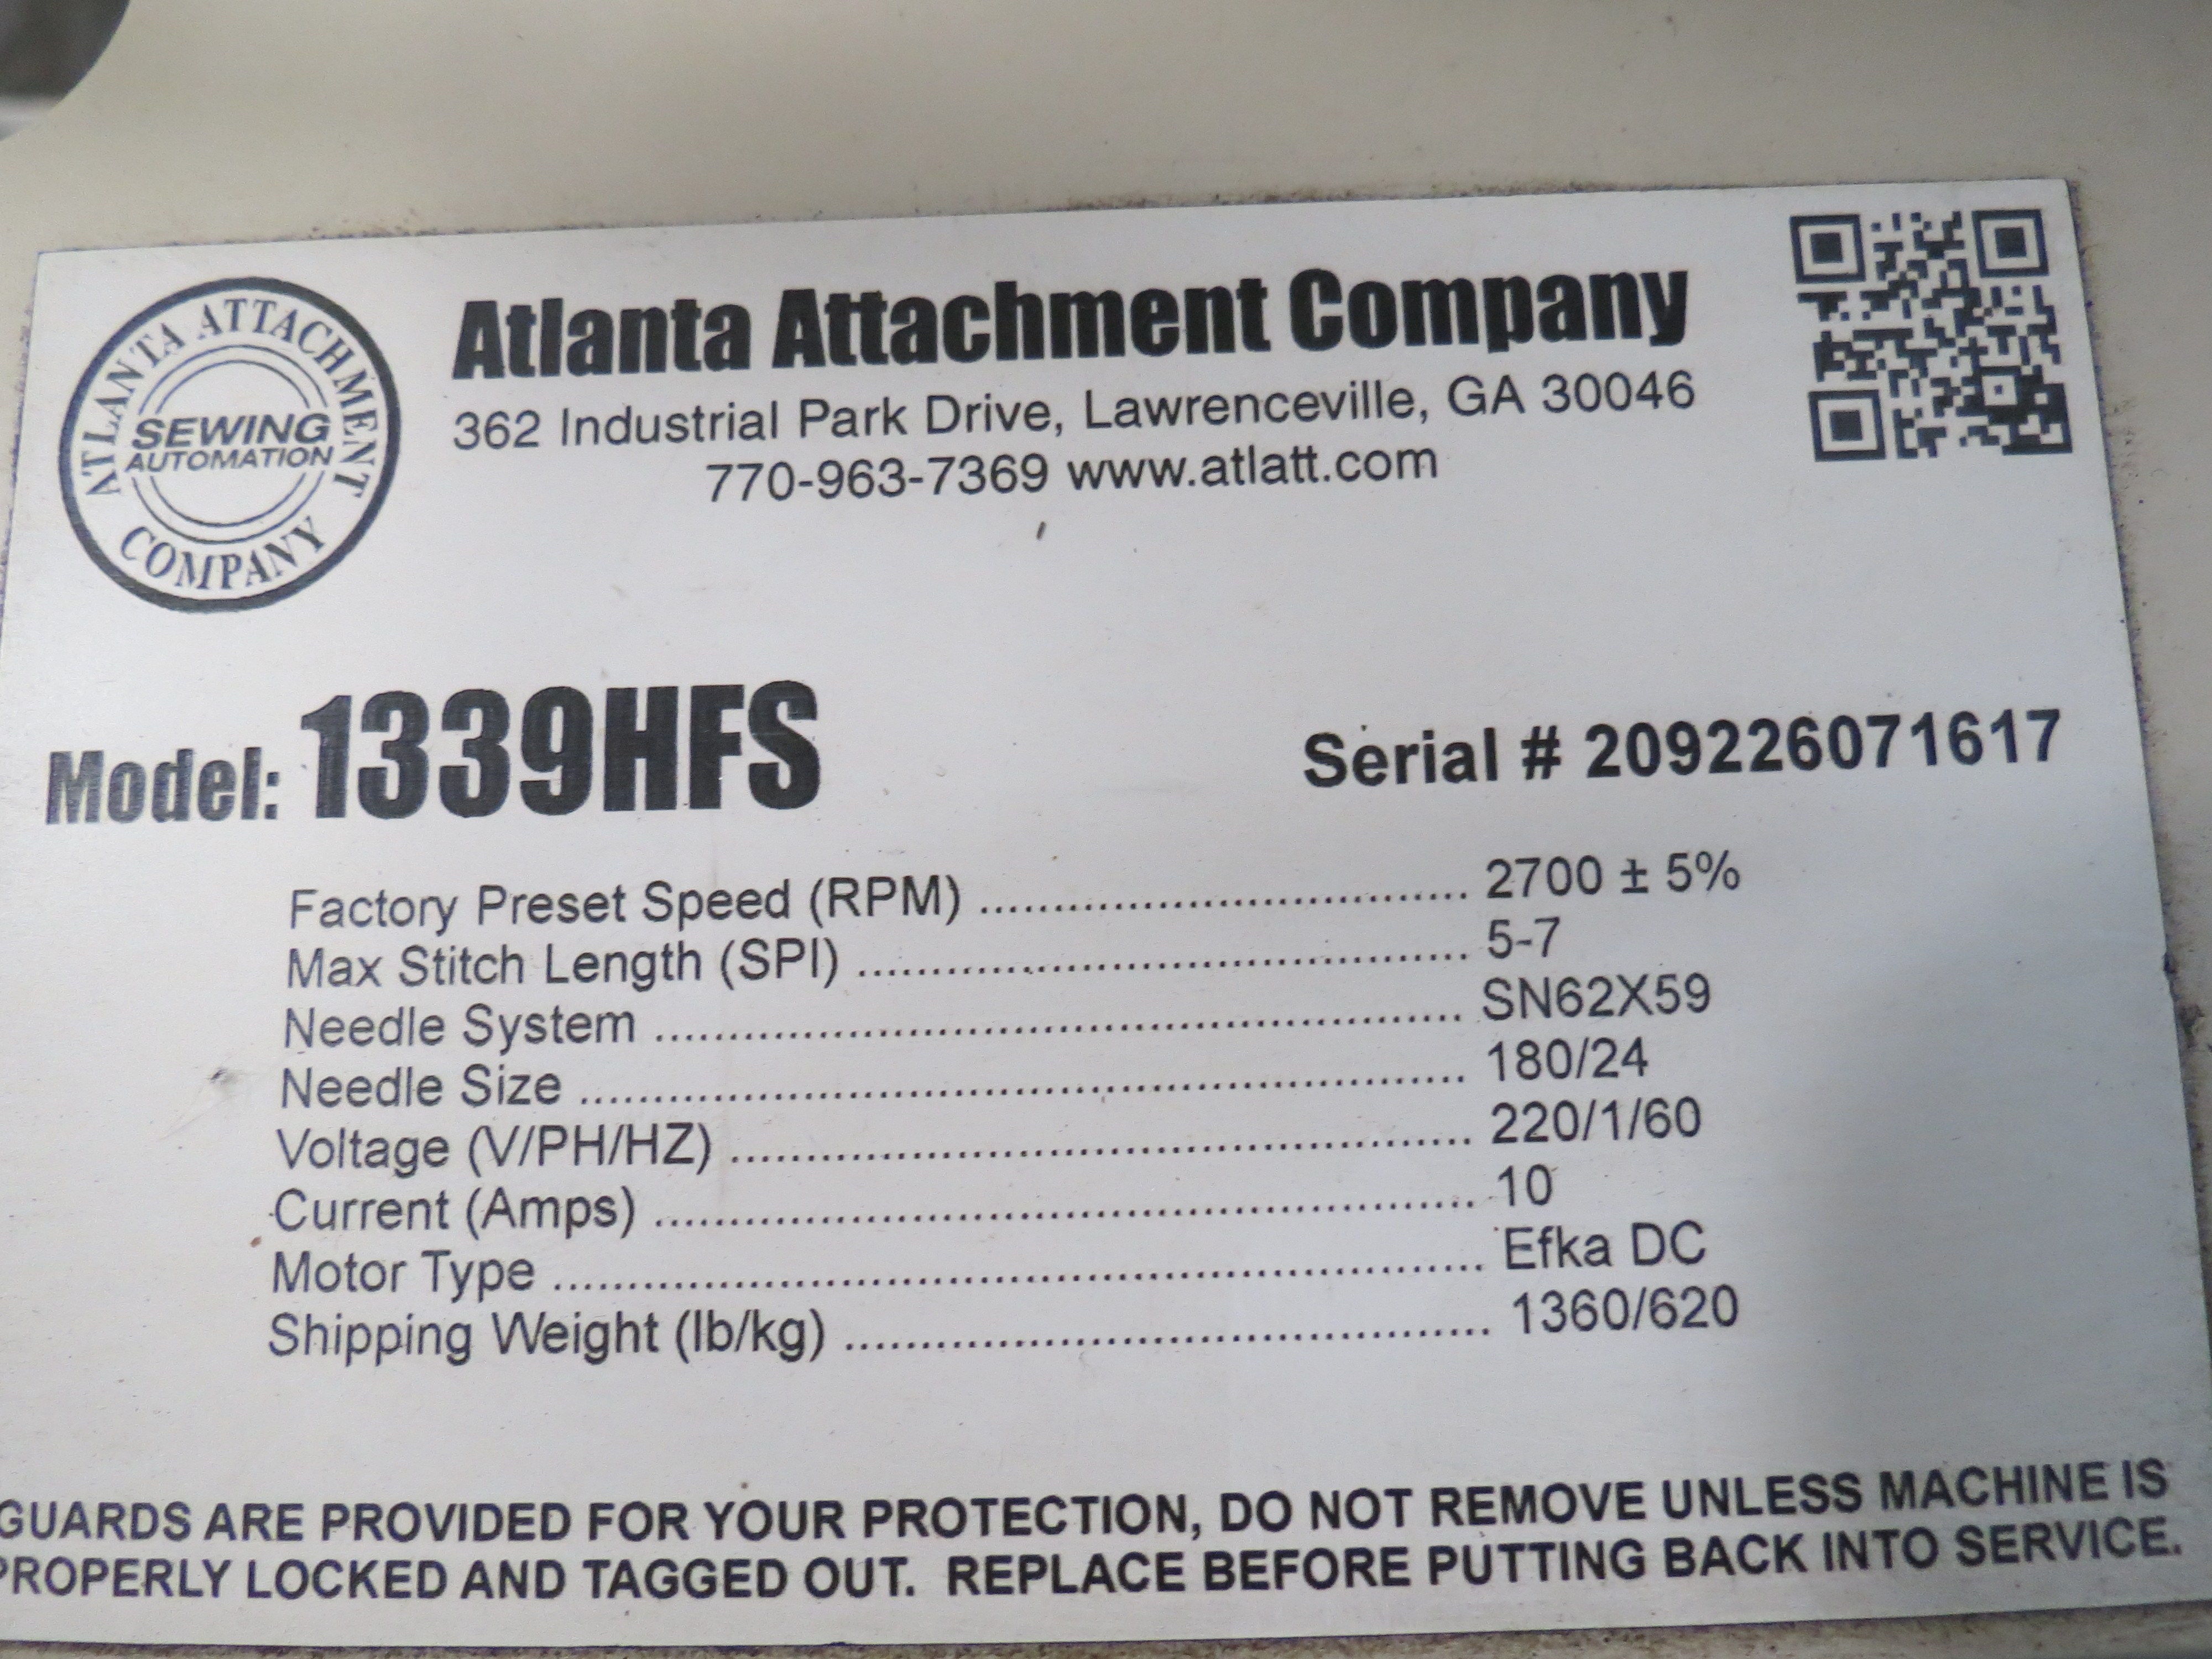 Atlanta Attachment Company 1339HFSHalf-Cap Sewing Machine, SN:209226071617, 220V, AAC 300UX6, ( - Image 5 of 5